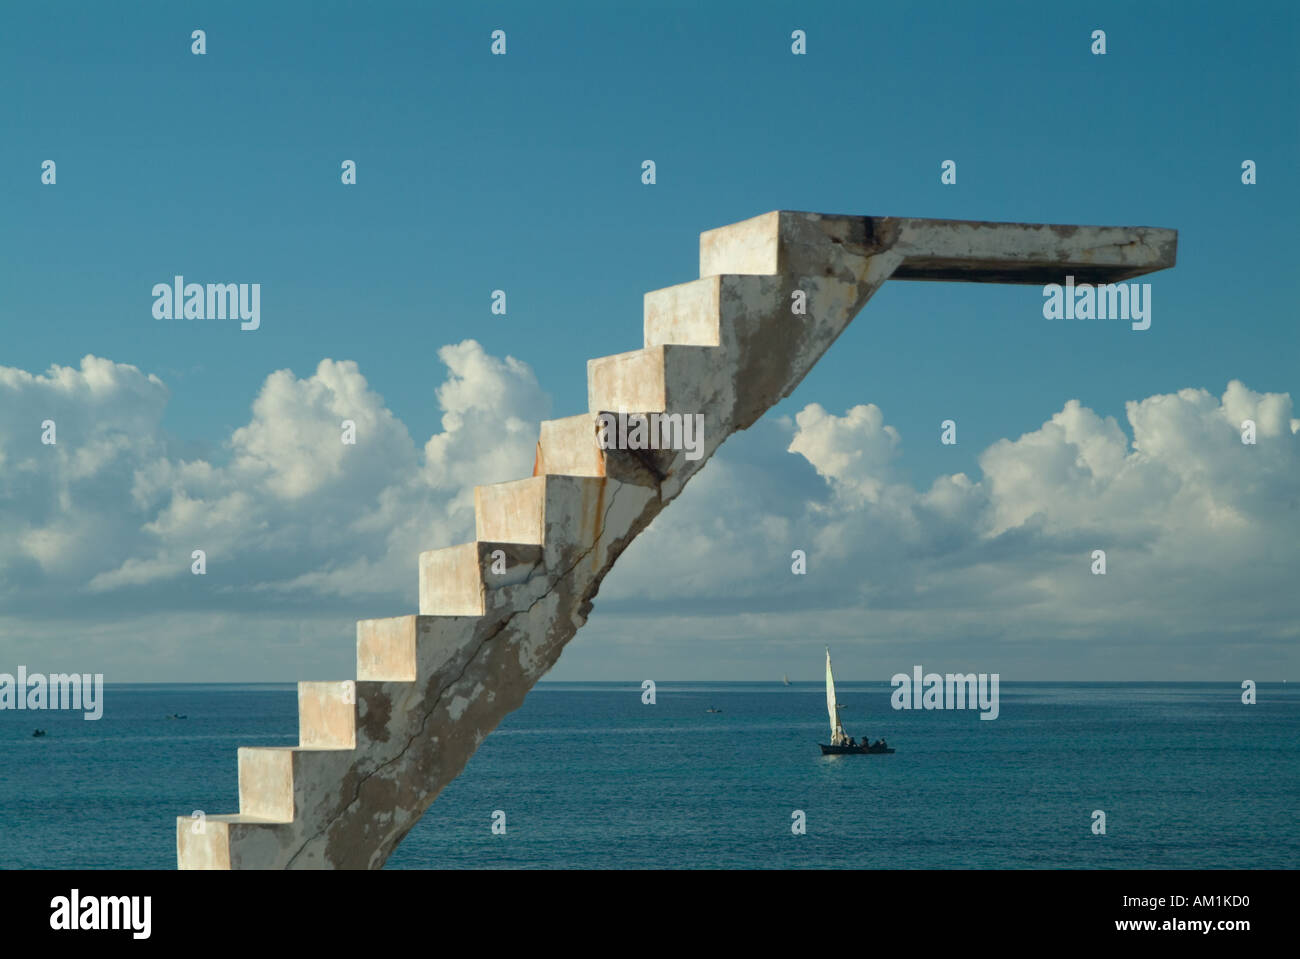 An Old Crumbling Diving Board Over An Empty Swimming Pool On The Stock Photo Royalty Free Image